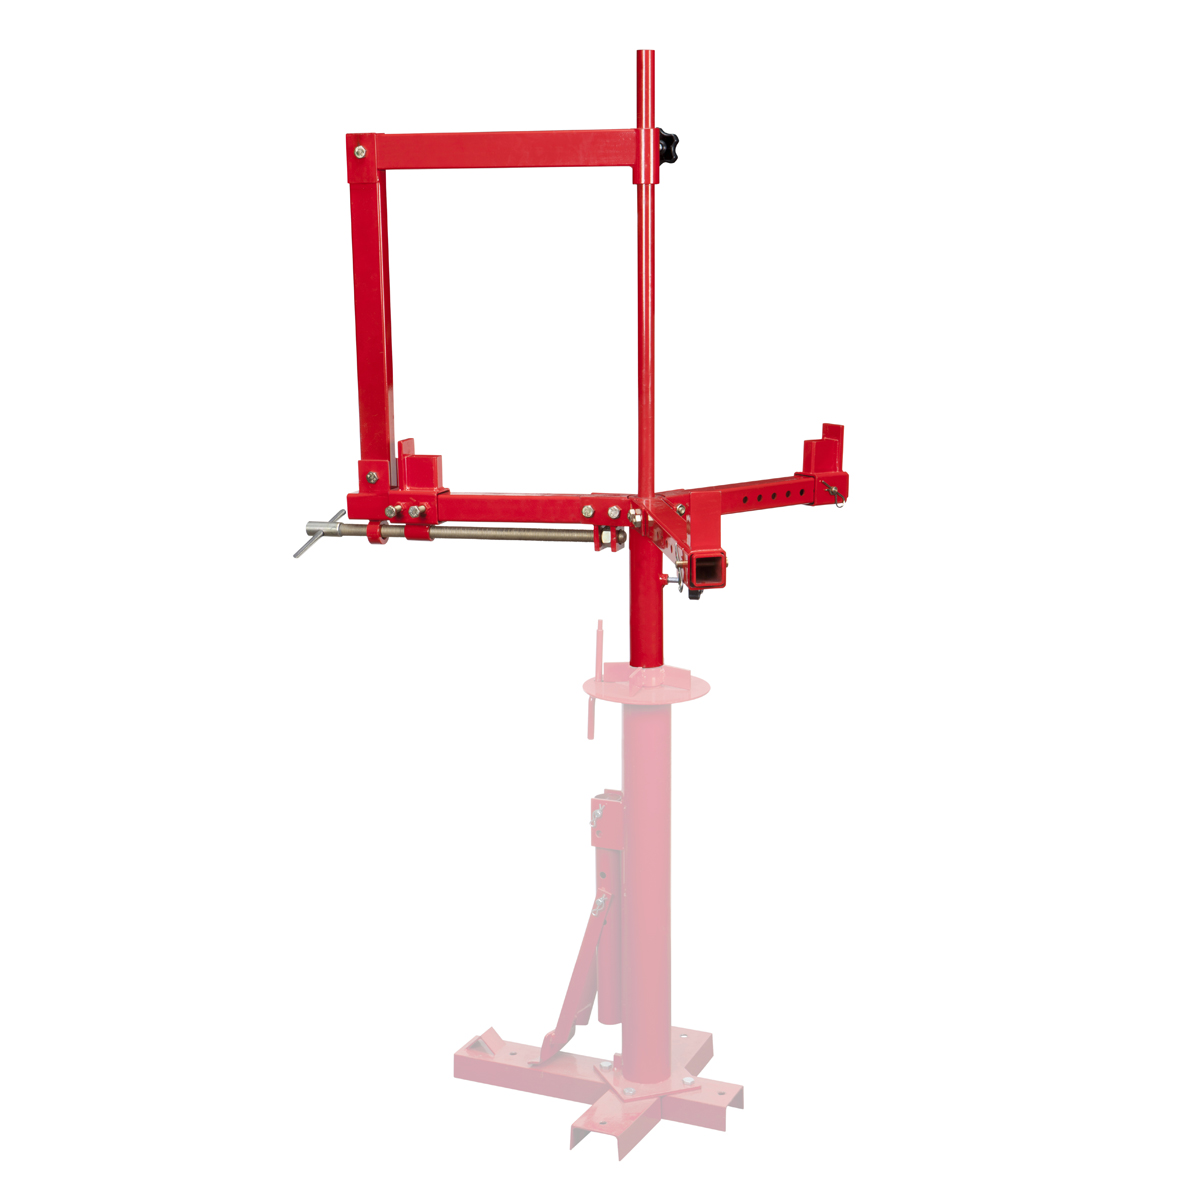 Motorcycle Tire Changer Attachment